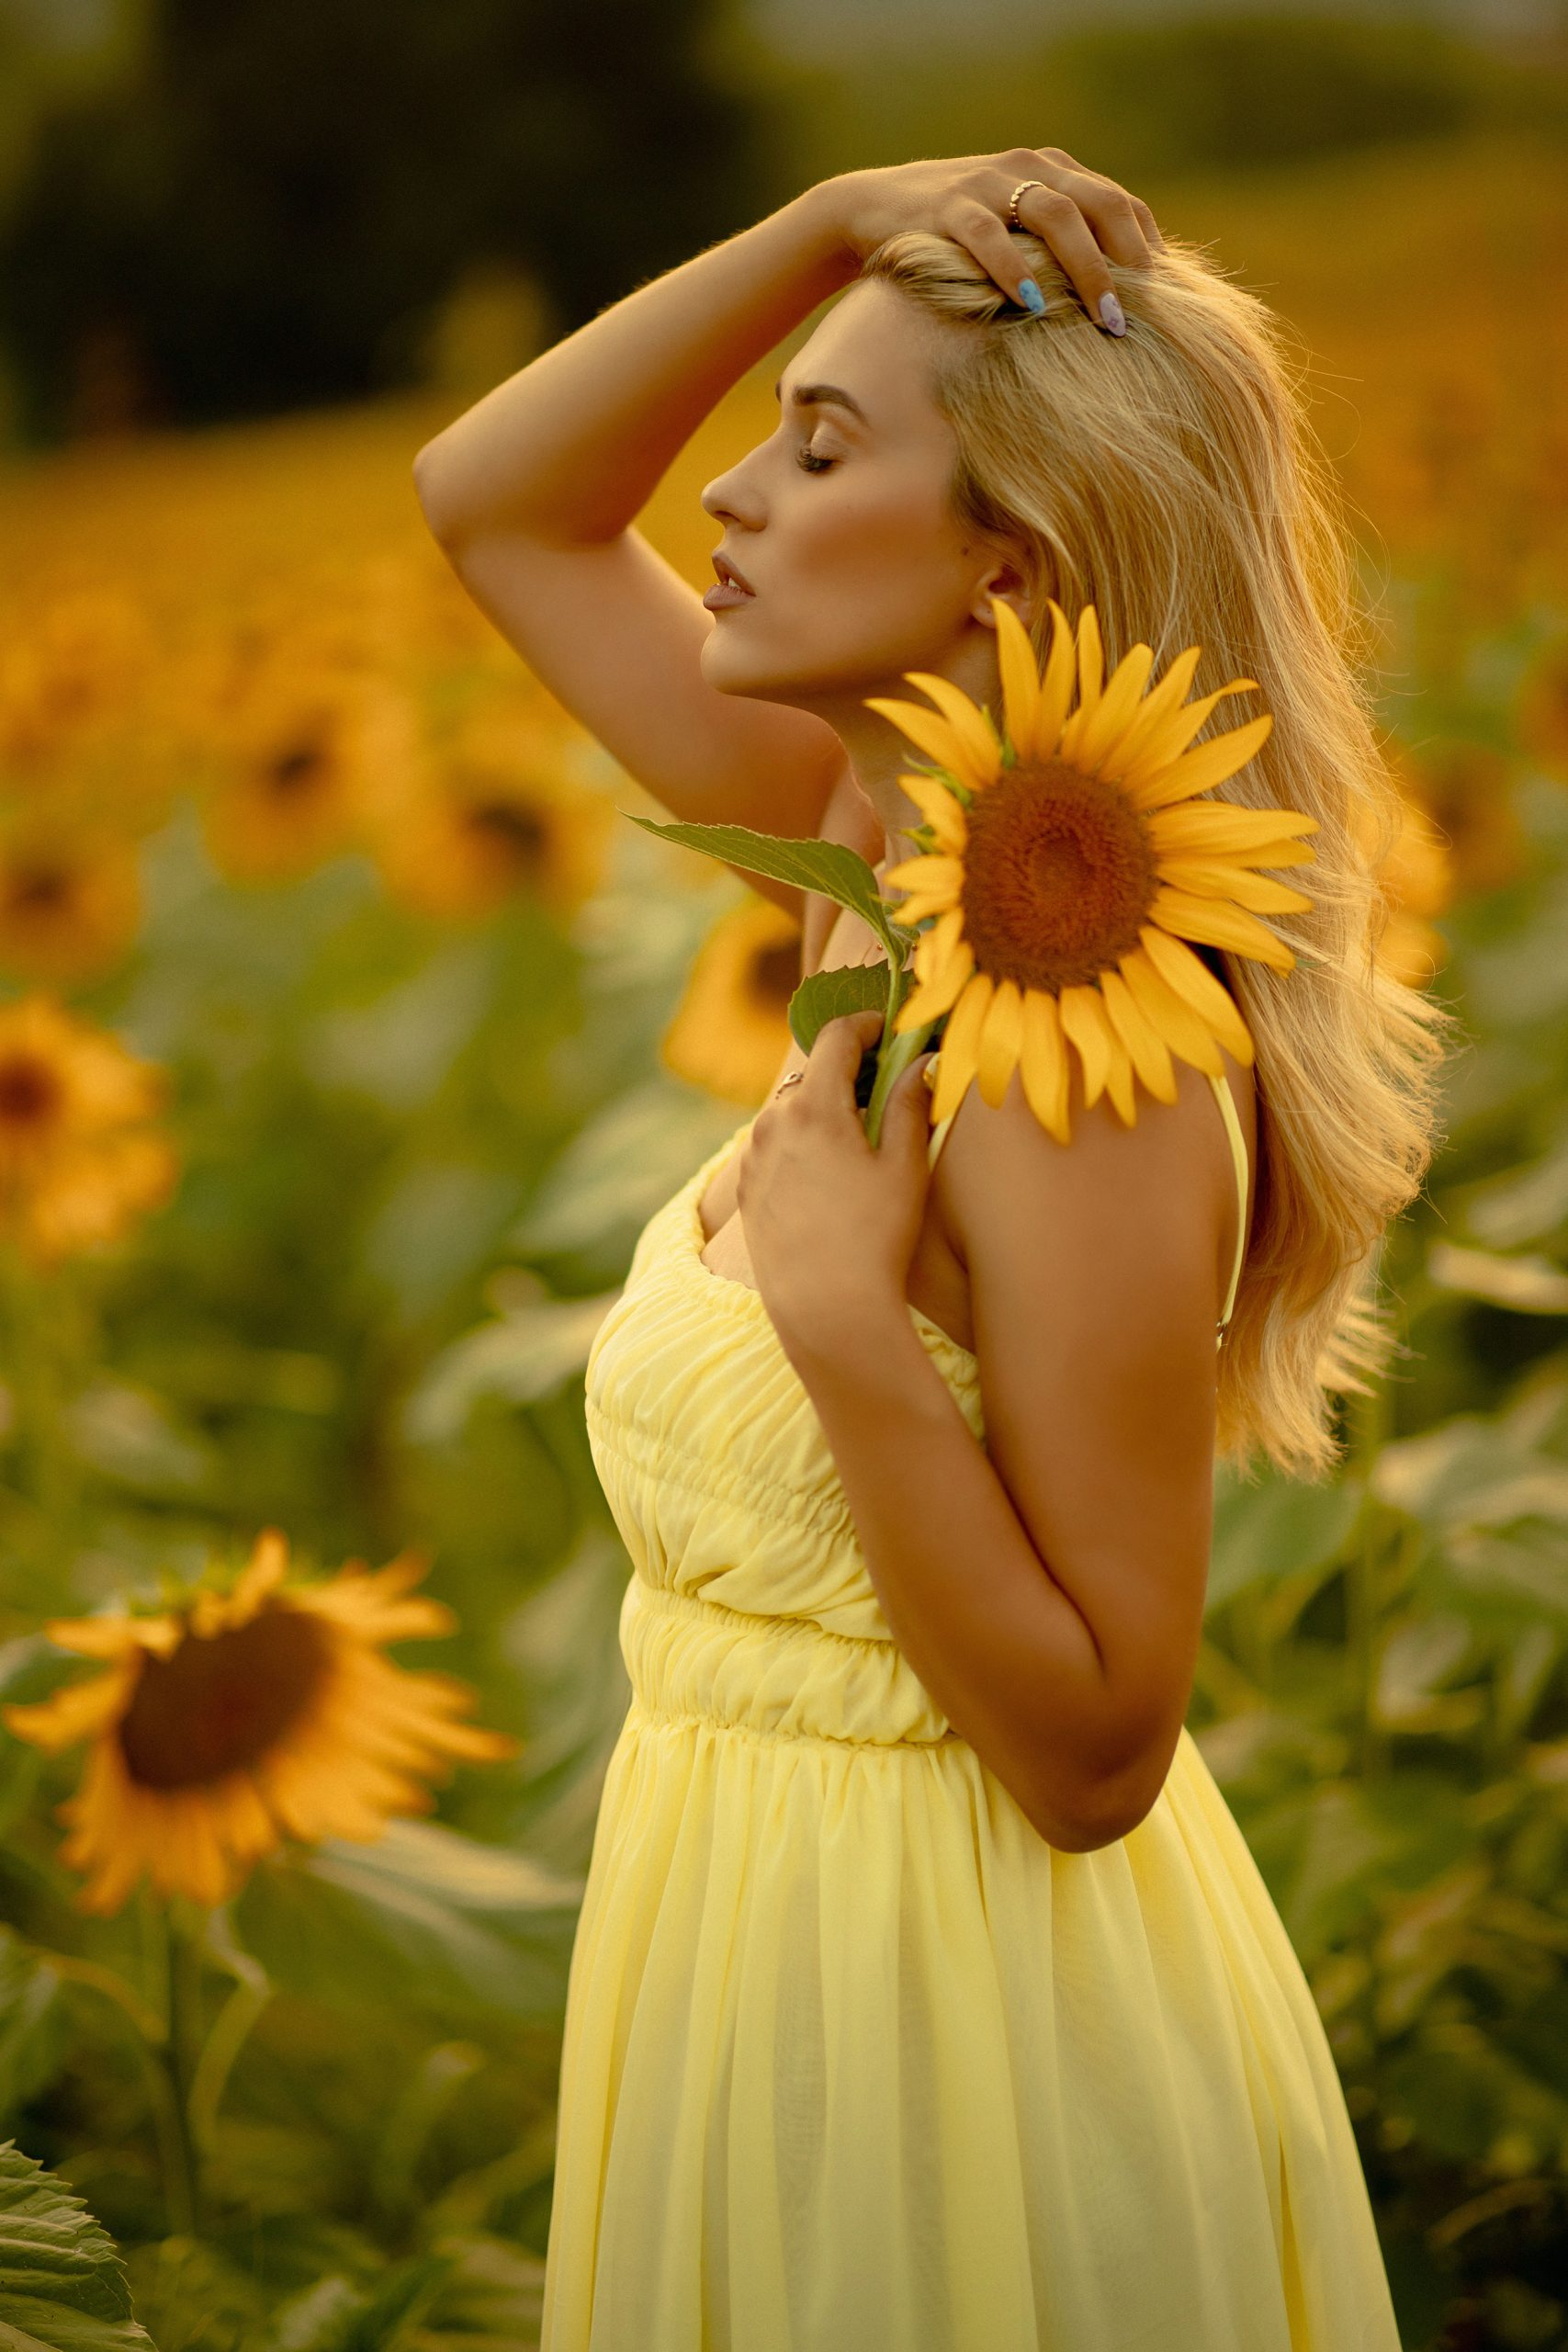 Blonde girl posing in nature with a sunflower on her hand